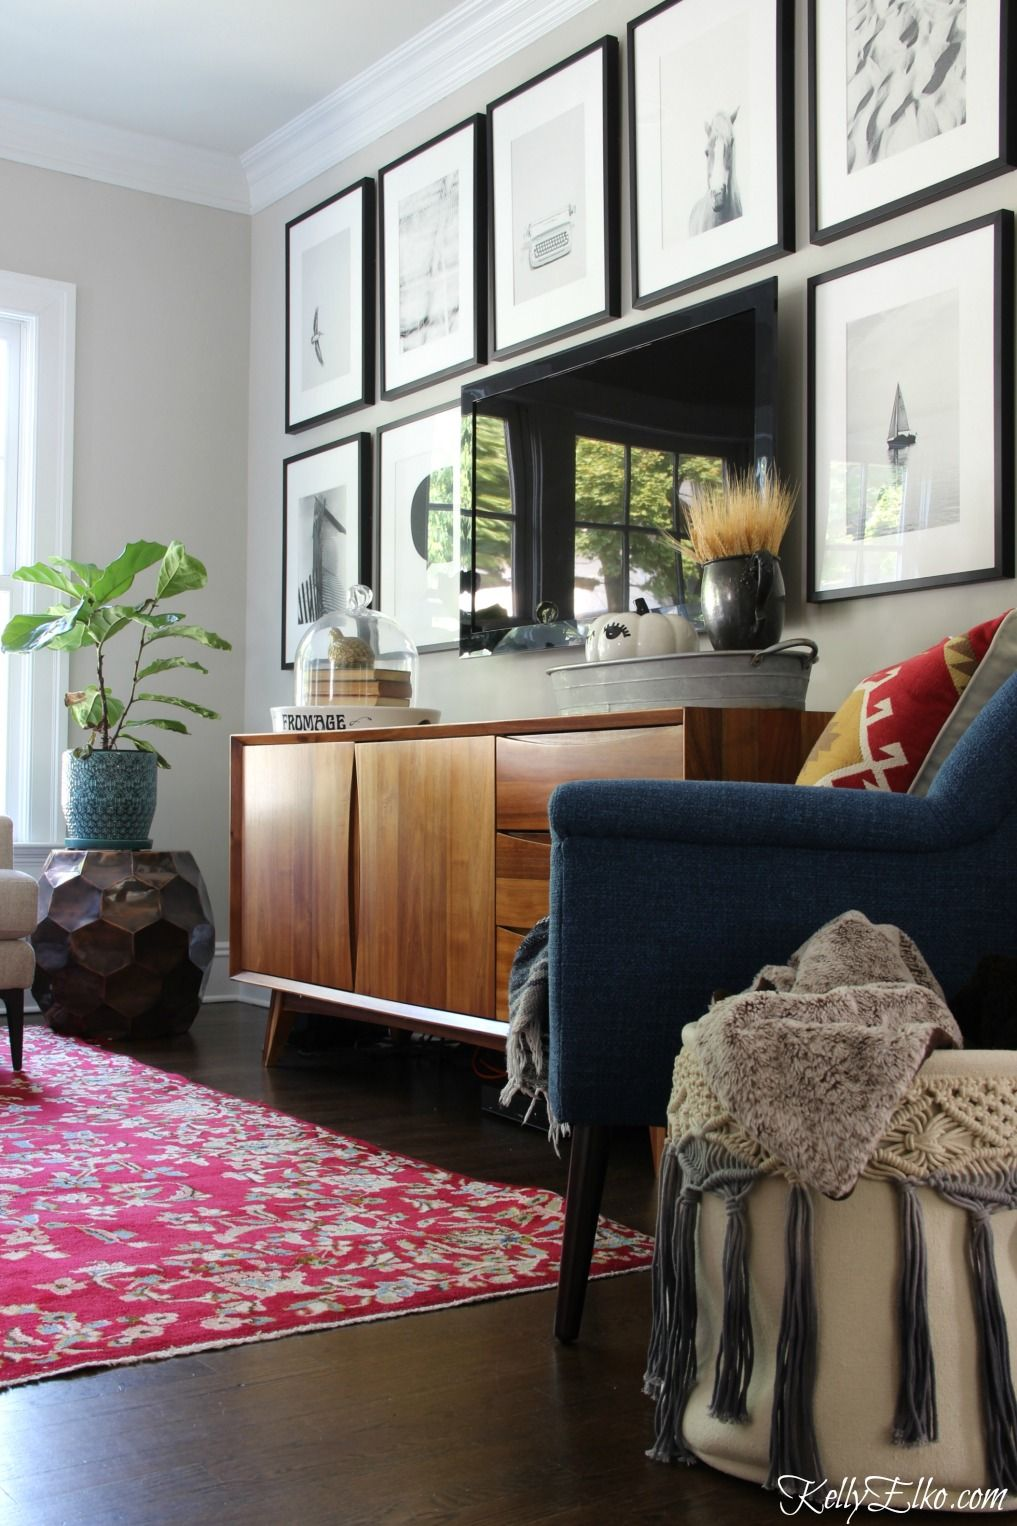 Vintage Living Room Ideas For Small Spaces: Vintage Rug - Everything Old Is New Again